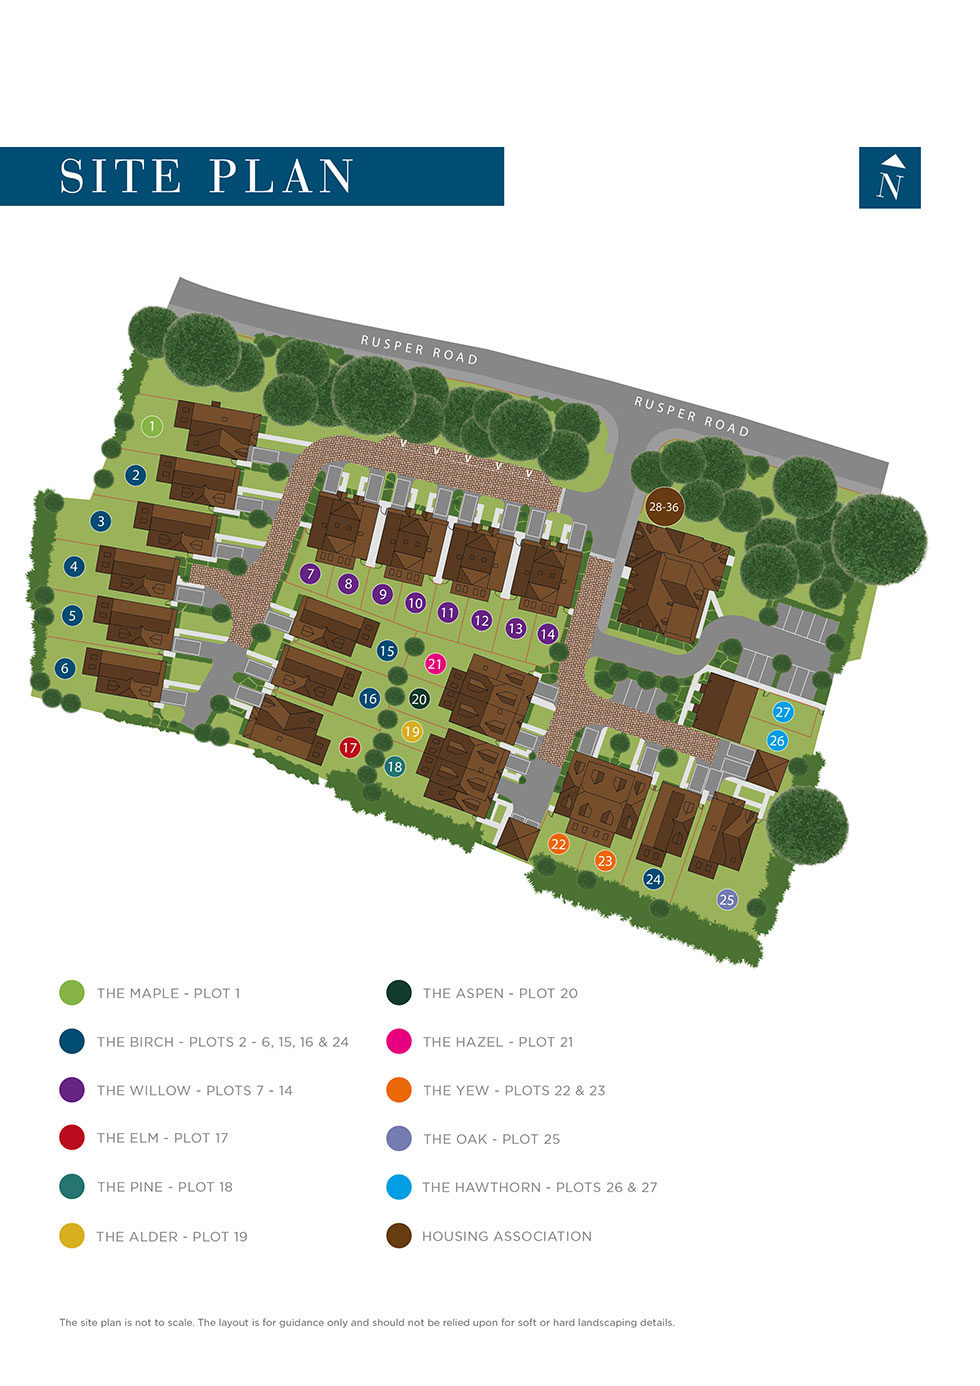 Plot 18 – The Pine Siteplan